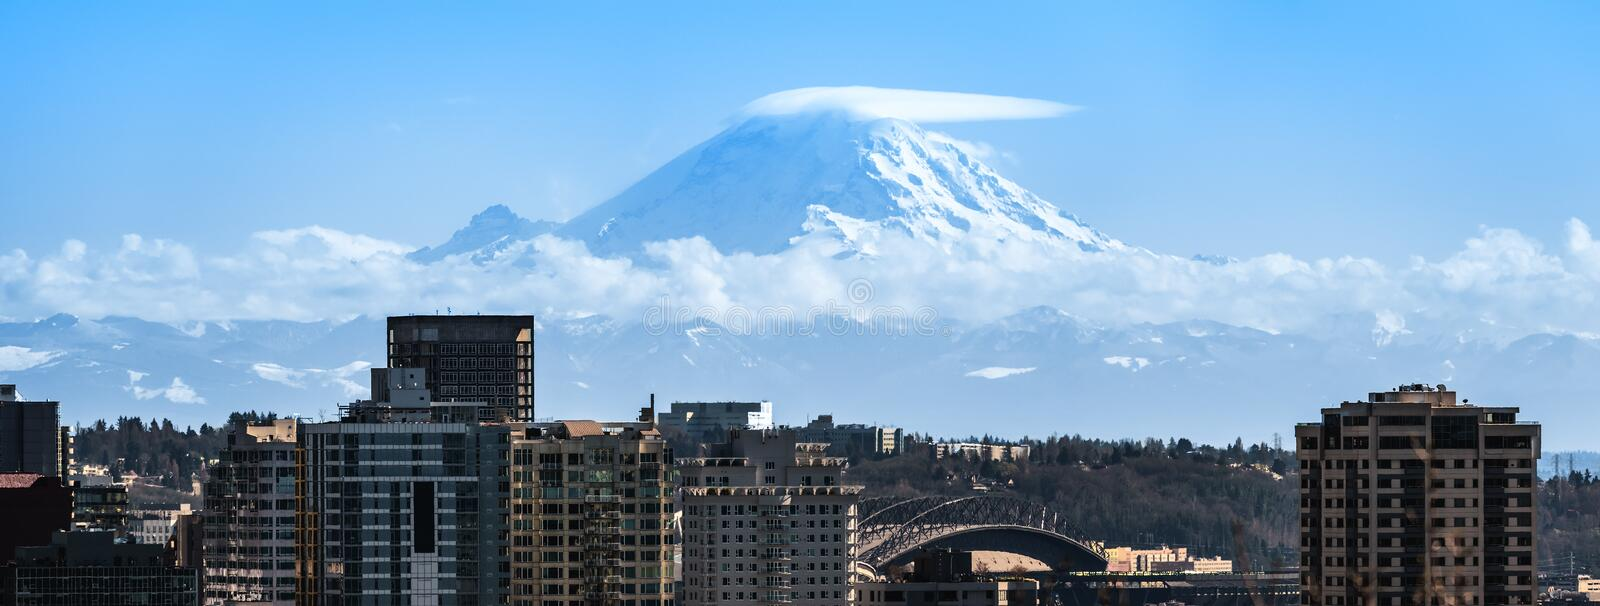 Mt Rainier at Seattle. An image of Mt Rainier at Seattle royalty free stock photography